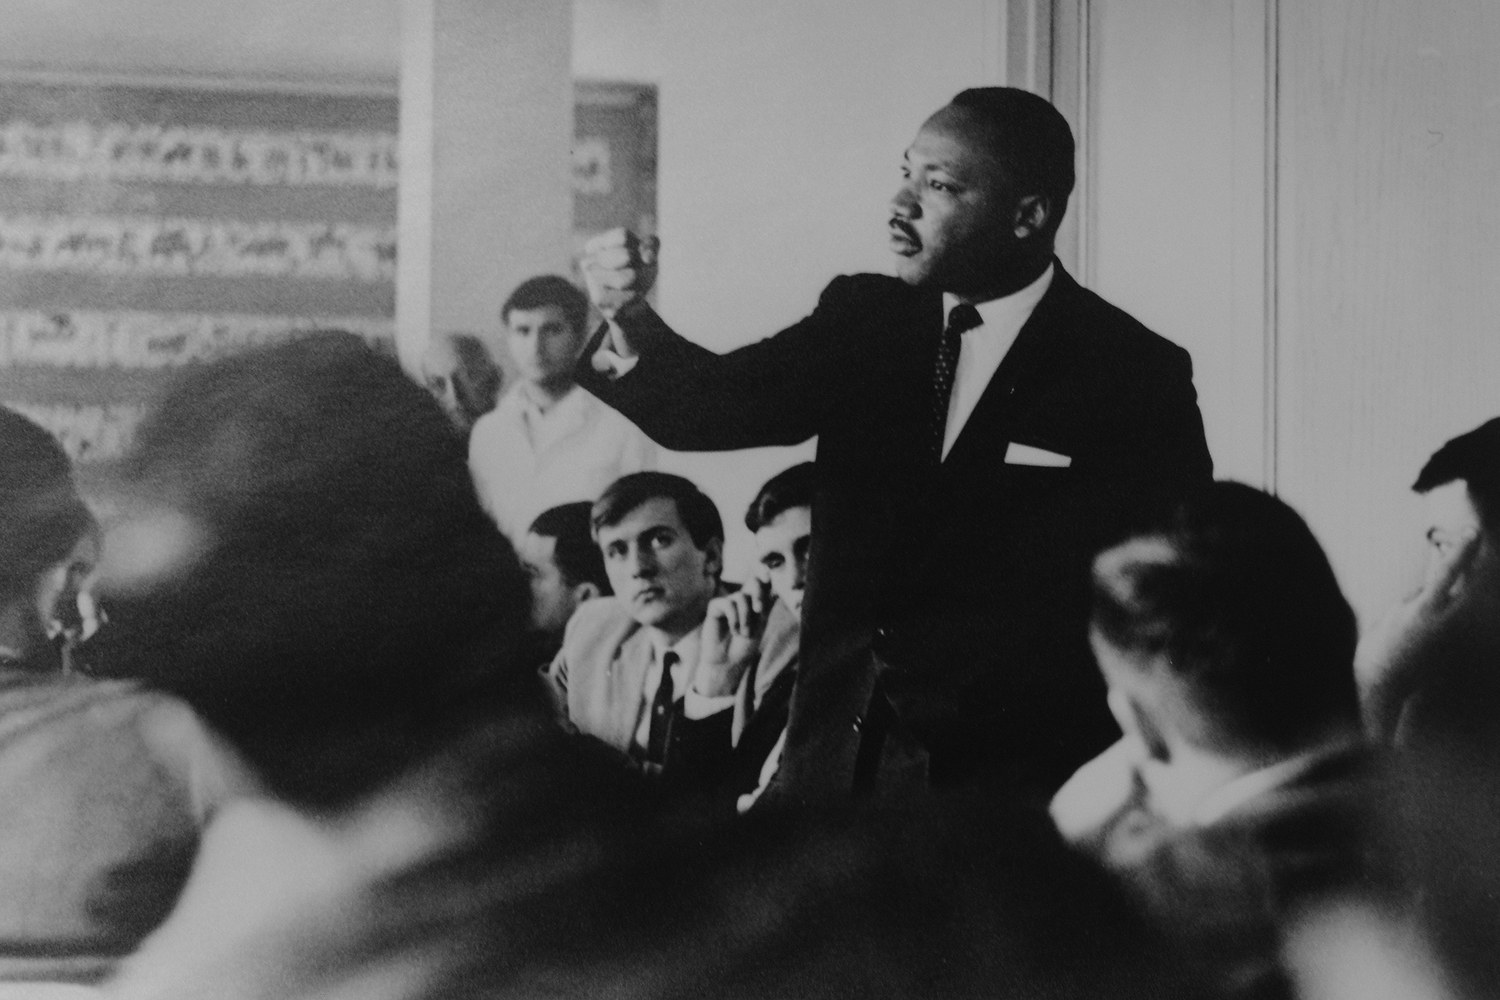 Dr. Martin Luther King, Jr. spoke at a College of Social Studies luncheon in 1964 and addressed a student rally later that day.